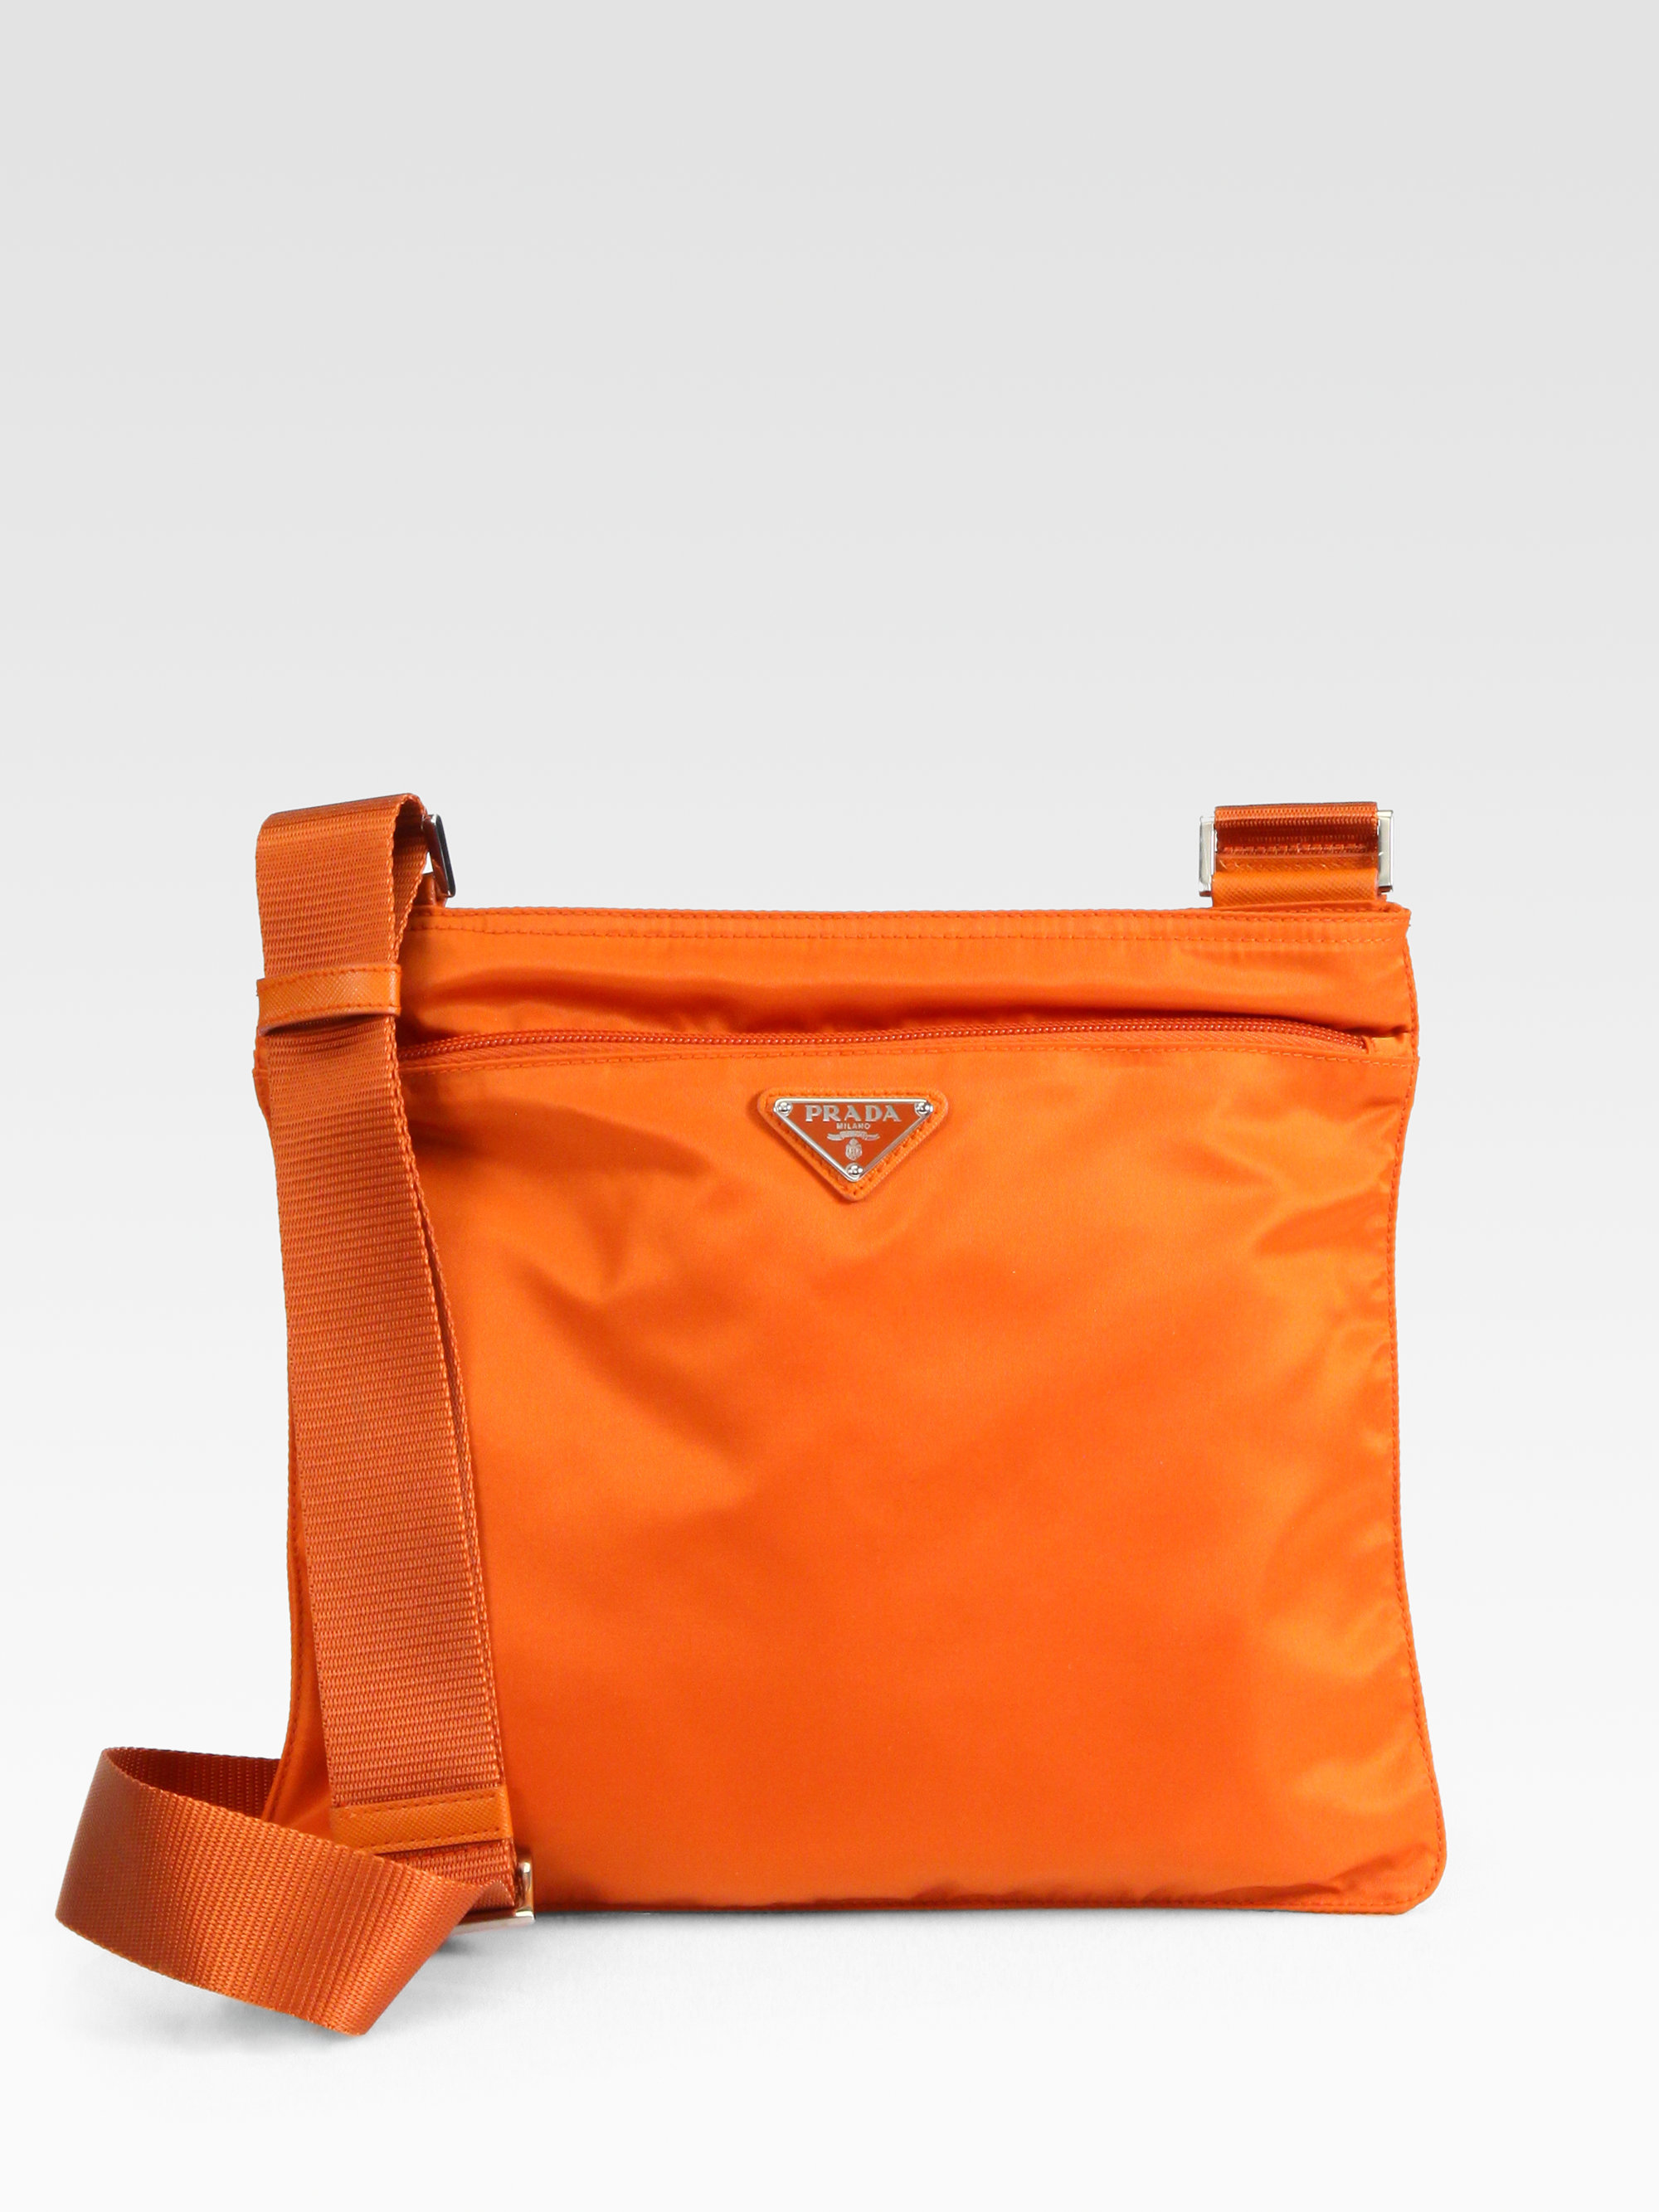 Prada Vela Large Messenger Bag in Orange (papaya-orange) | Lyst